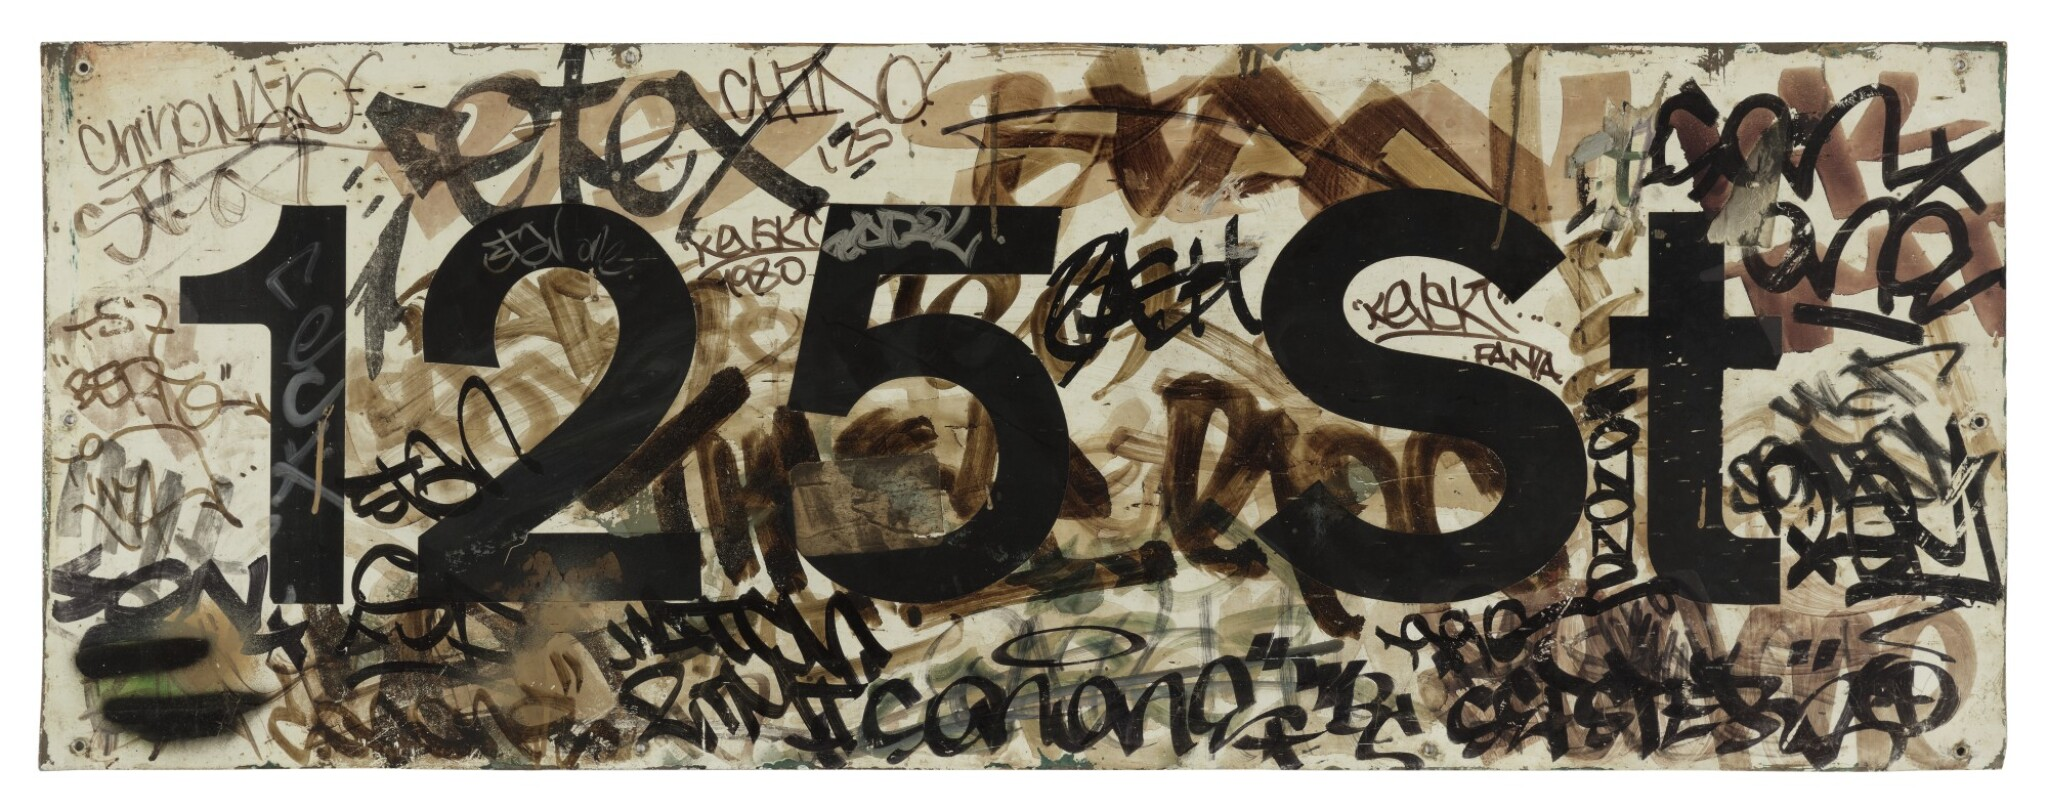 View full screen - View 1 of Lot 6. VINTAGE 125TH STREET MTA SUBWAY STATION PLATFORM SIGN W/GRAFFITI FROM LOCAL HARLEM WRITERS, 1980-85.